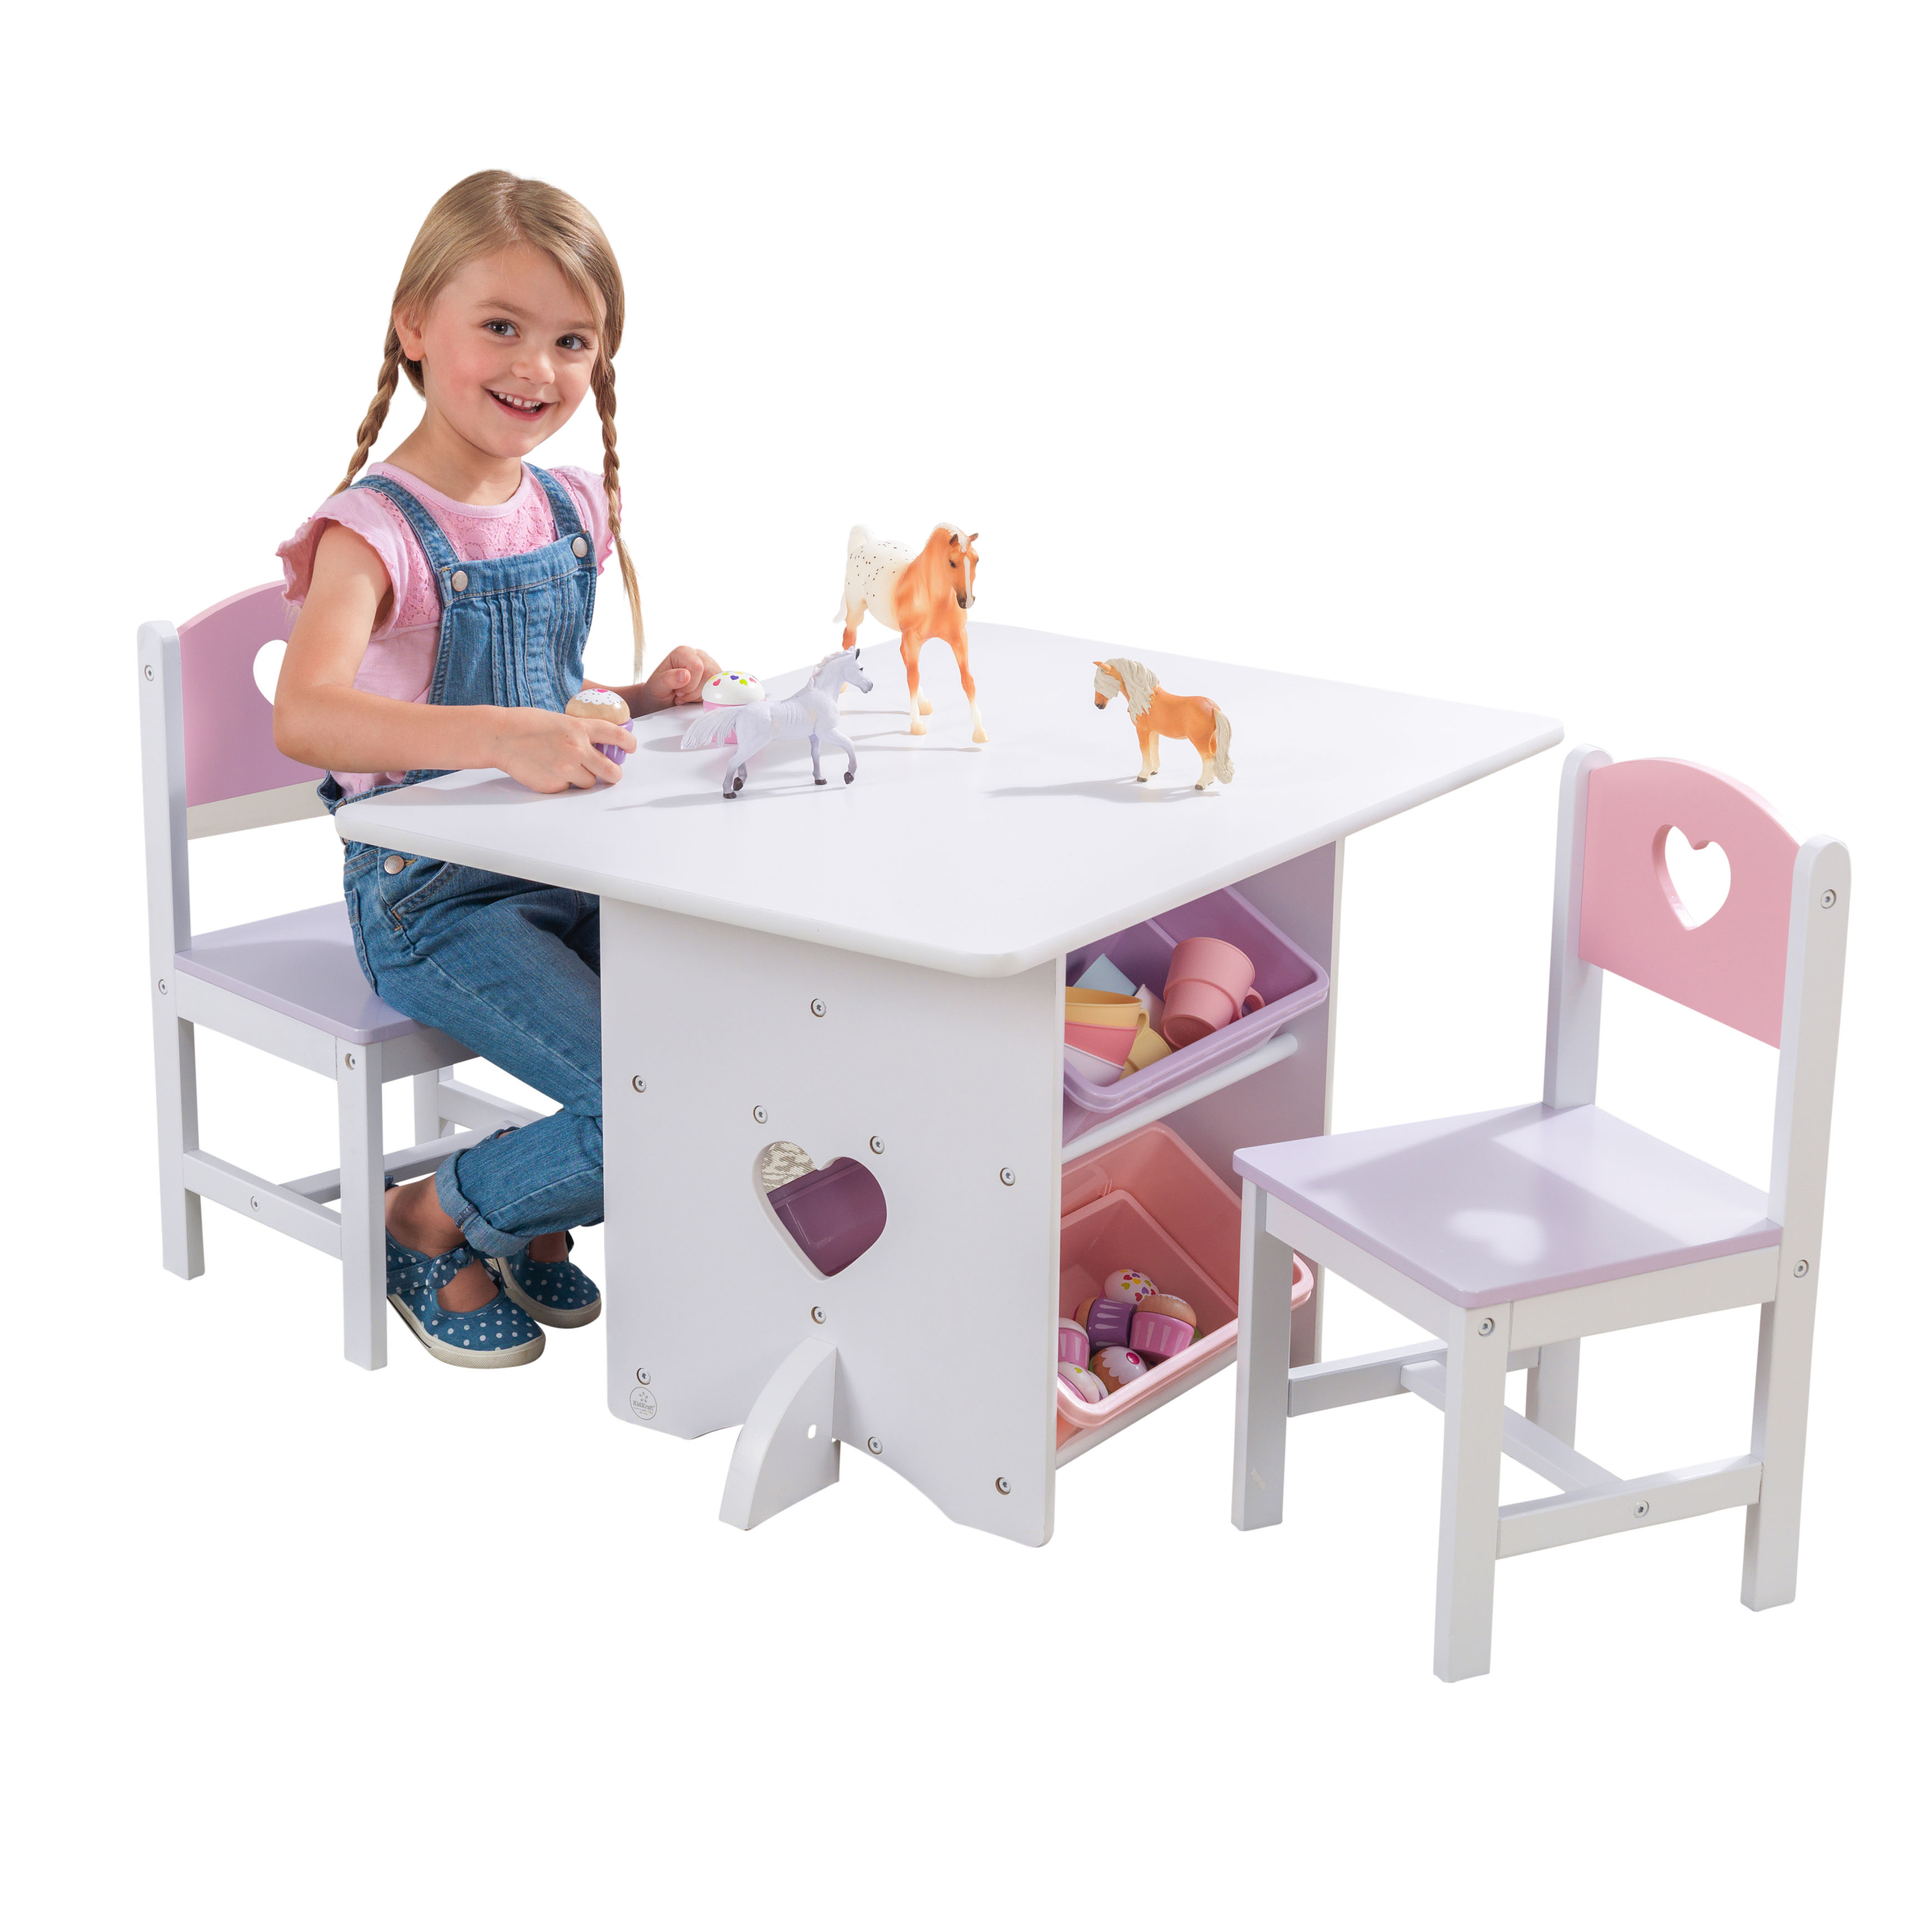 KidKraft Heart Table u0026 Chair Set  sc 1 st  Walmart & KidKraft Heart Table u0026 Chair Set - Walmart.com